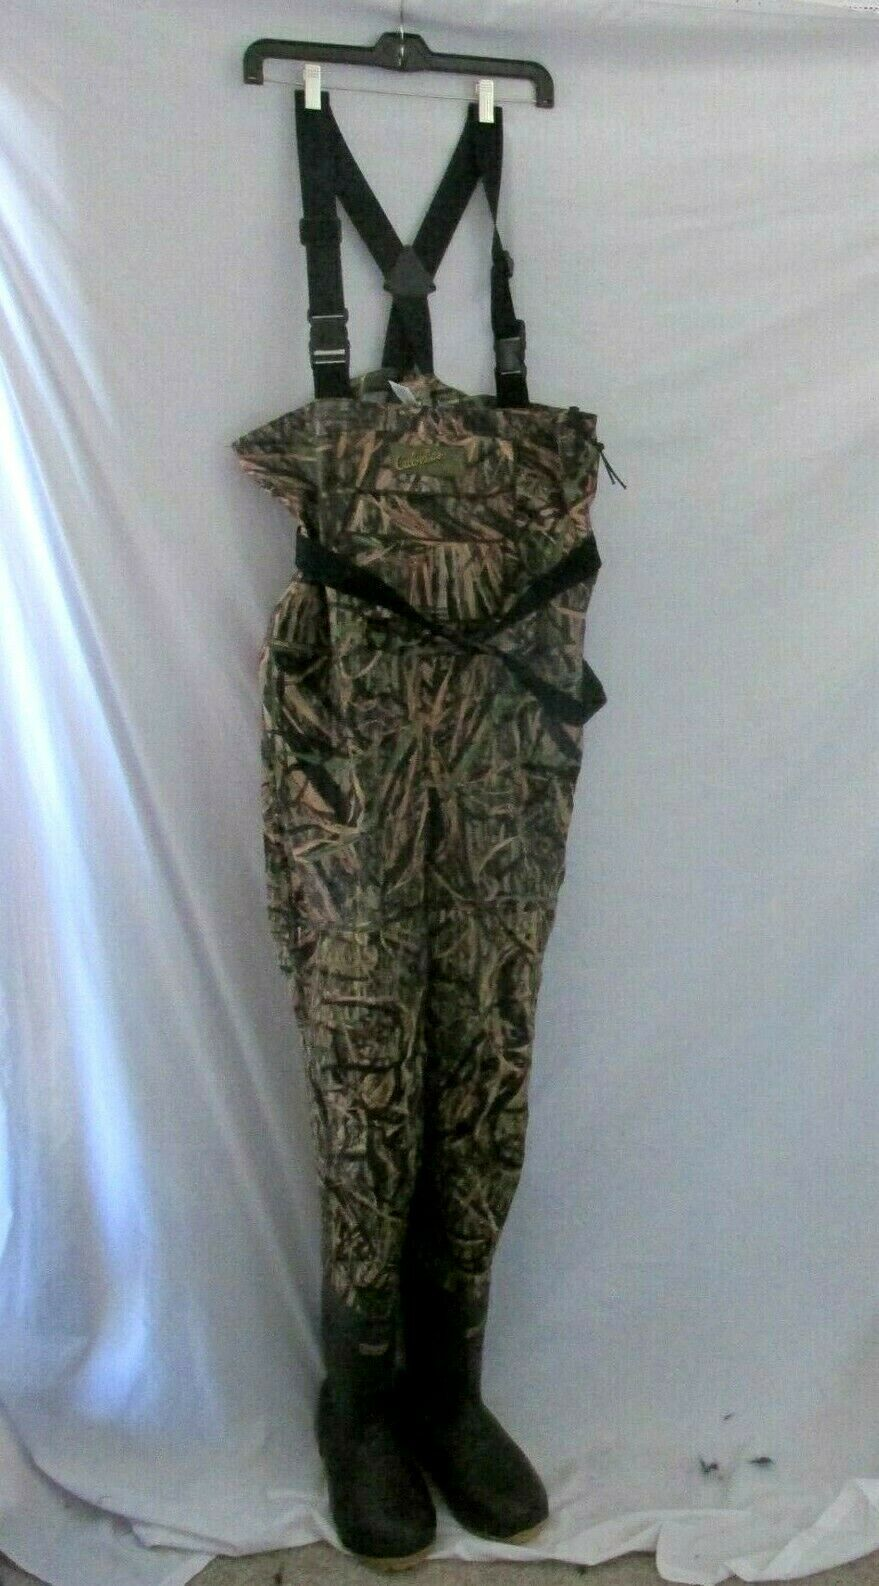 Cabela's Dry Plus  Water Waders W  Thinsulate Boots 9 Regular Appear Unused  save up to 30-50% off